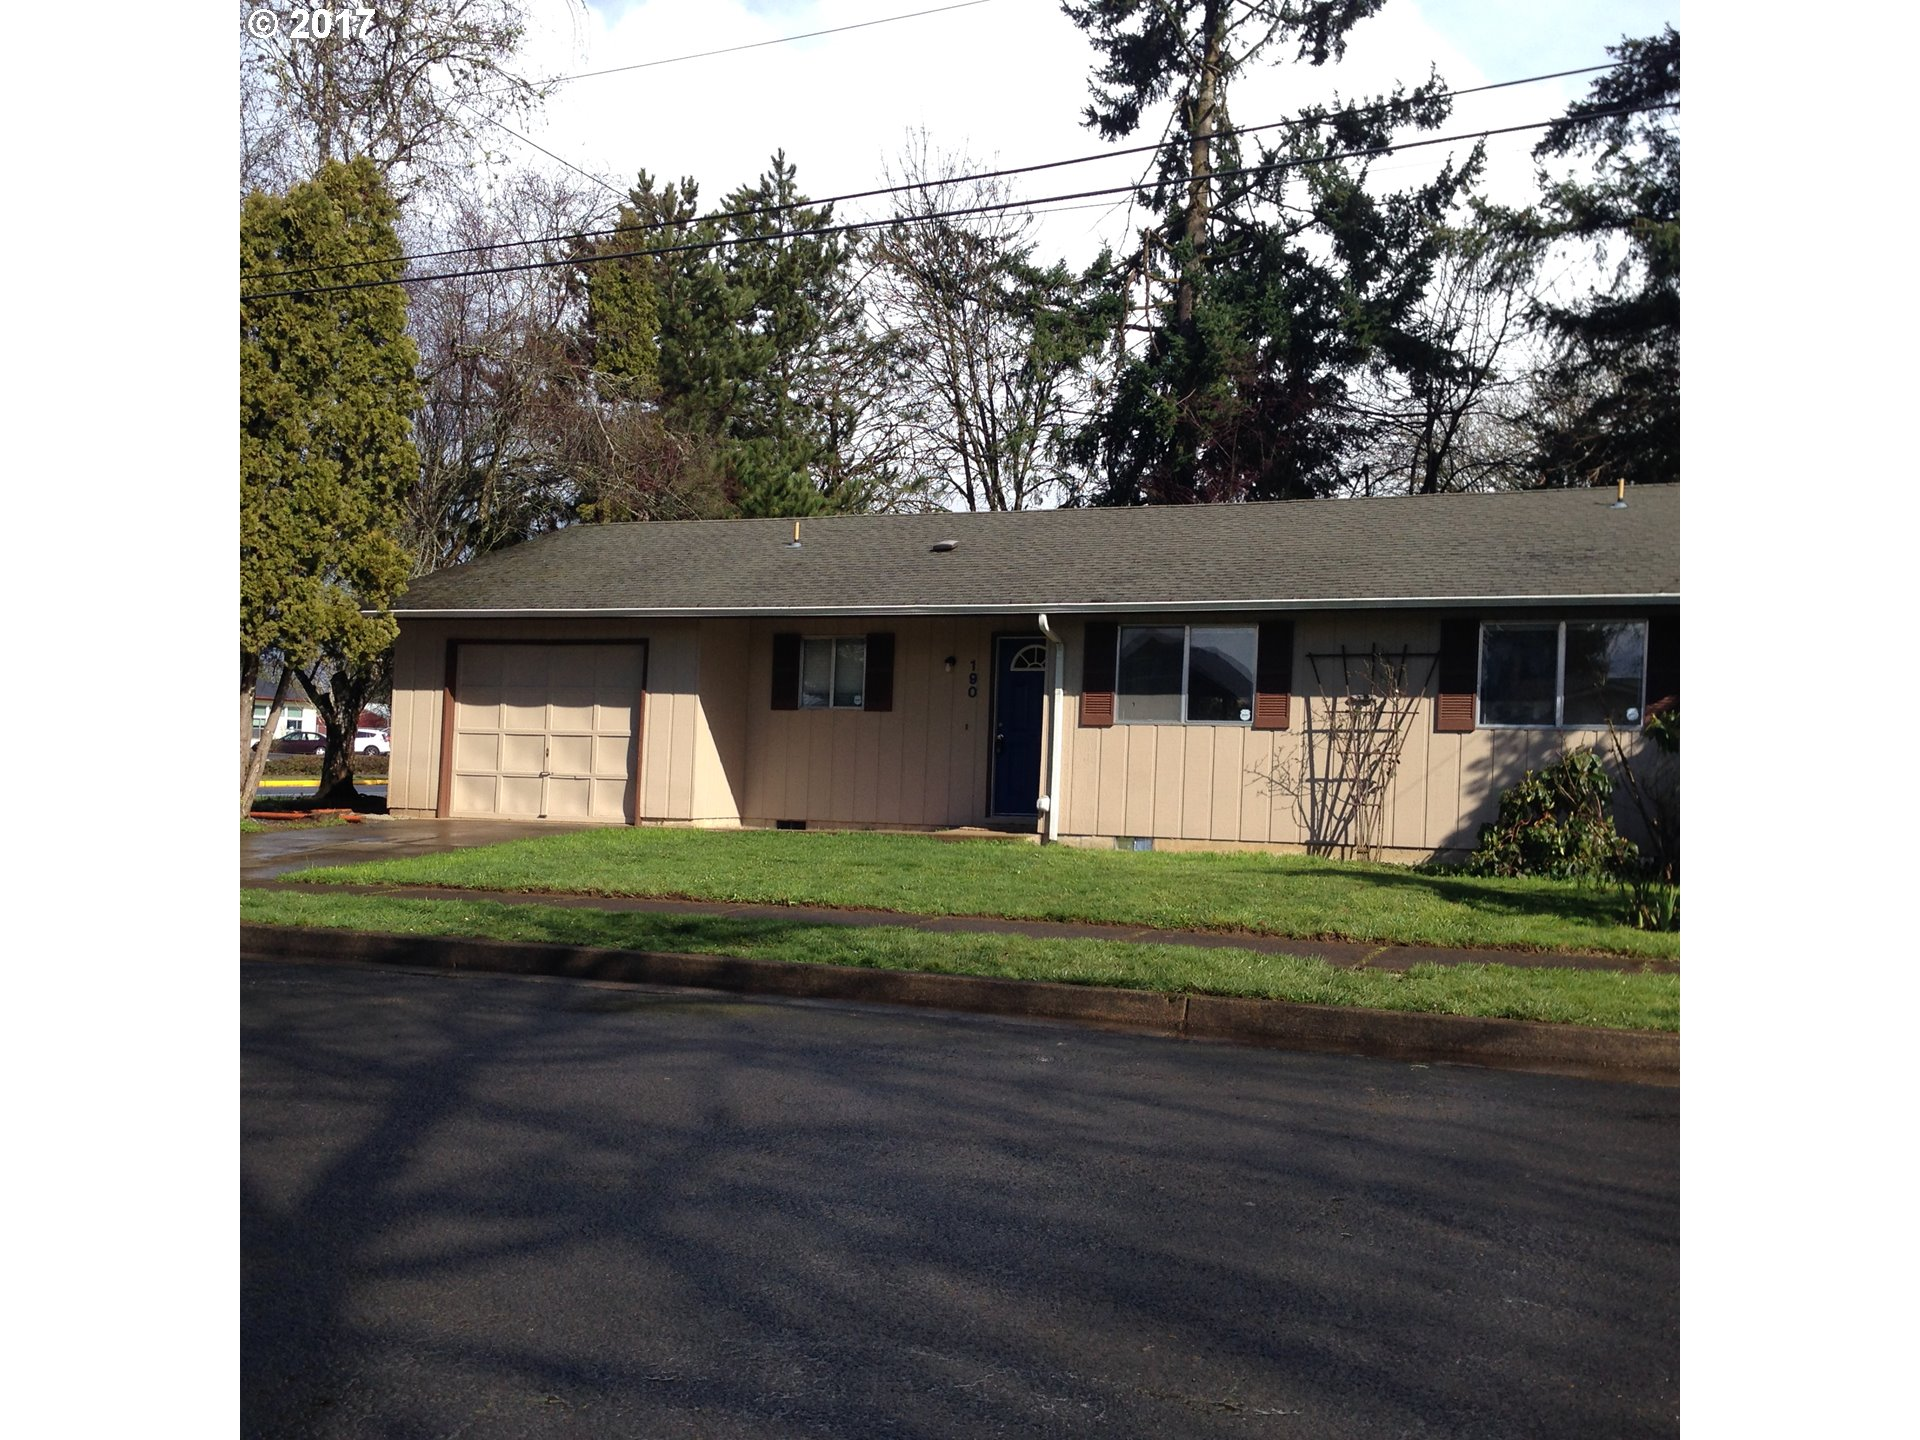 190 N 9TH ST, Creswell, OR 97426